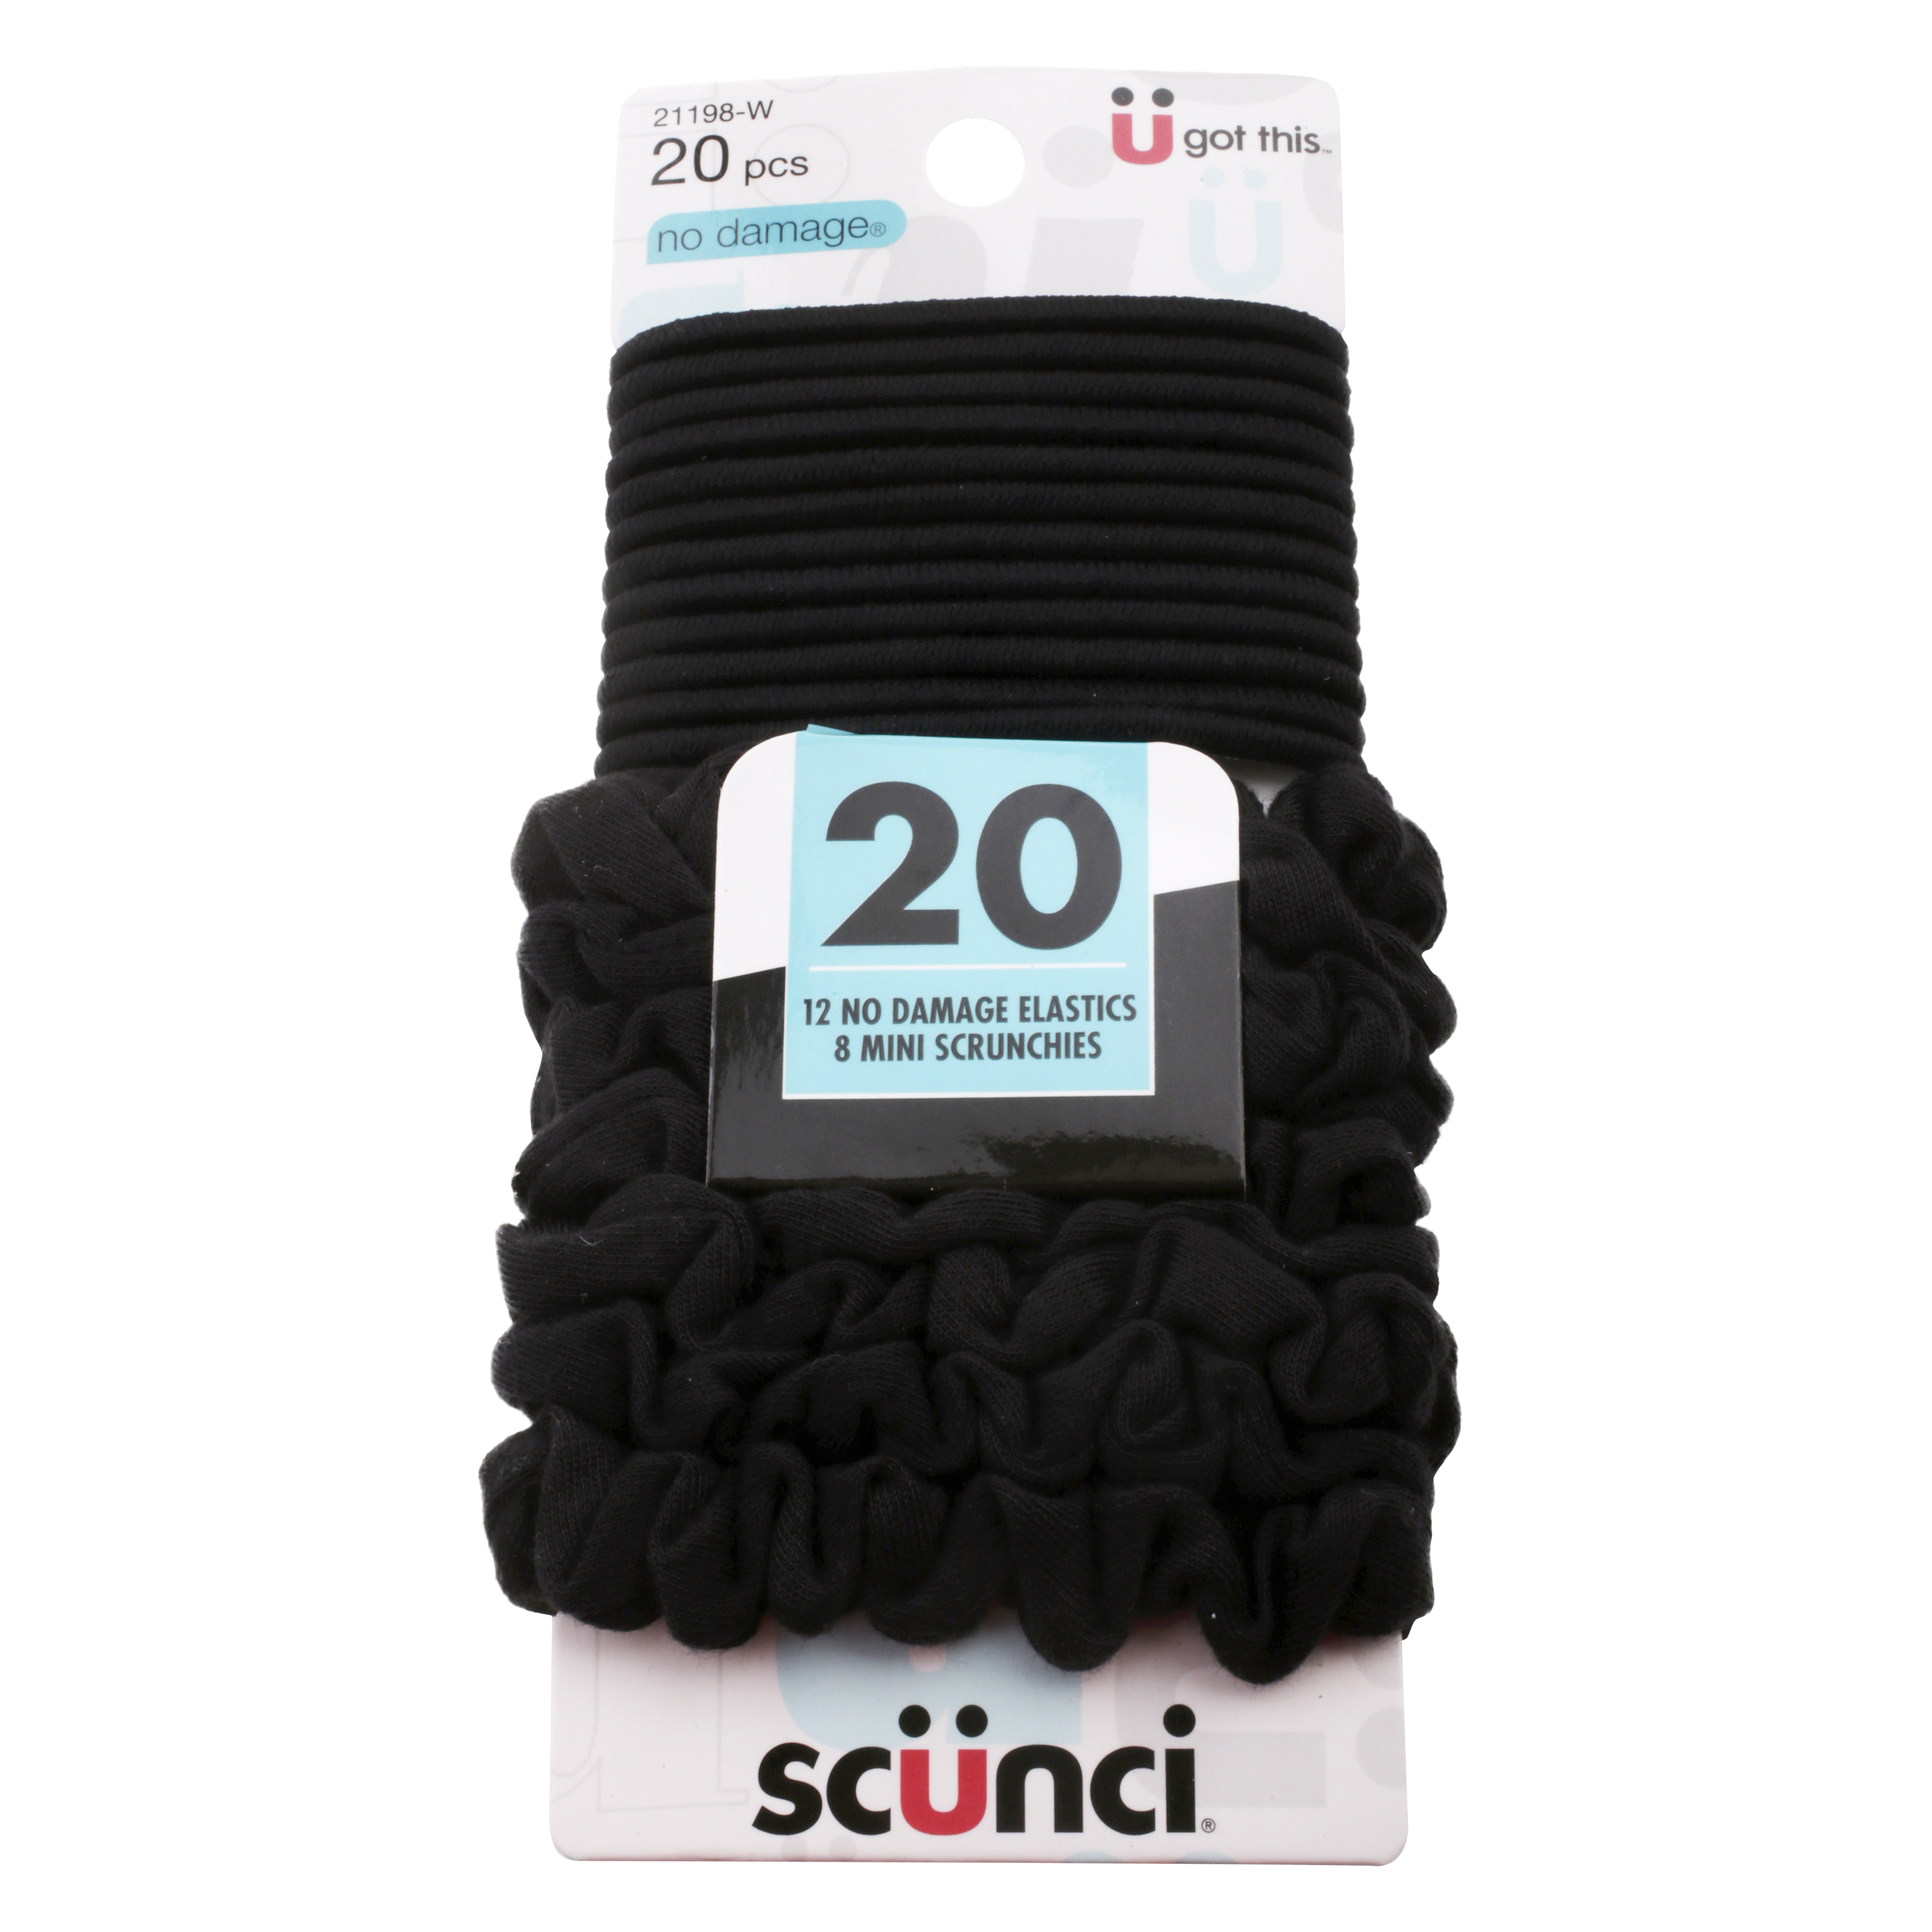 Scunci No Damage Super Comfy Elastics and Mini Scrunchies, 20-pack